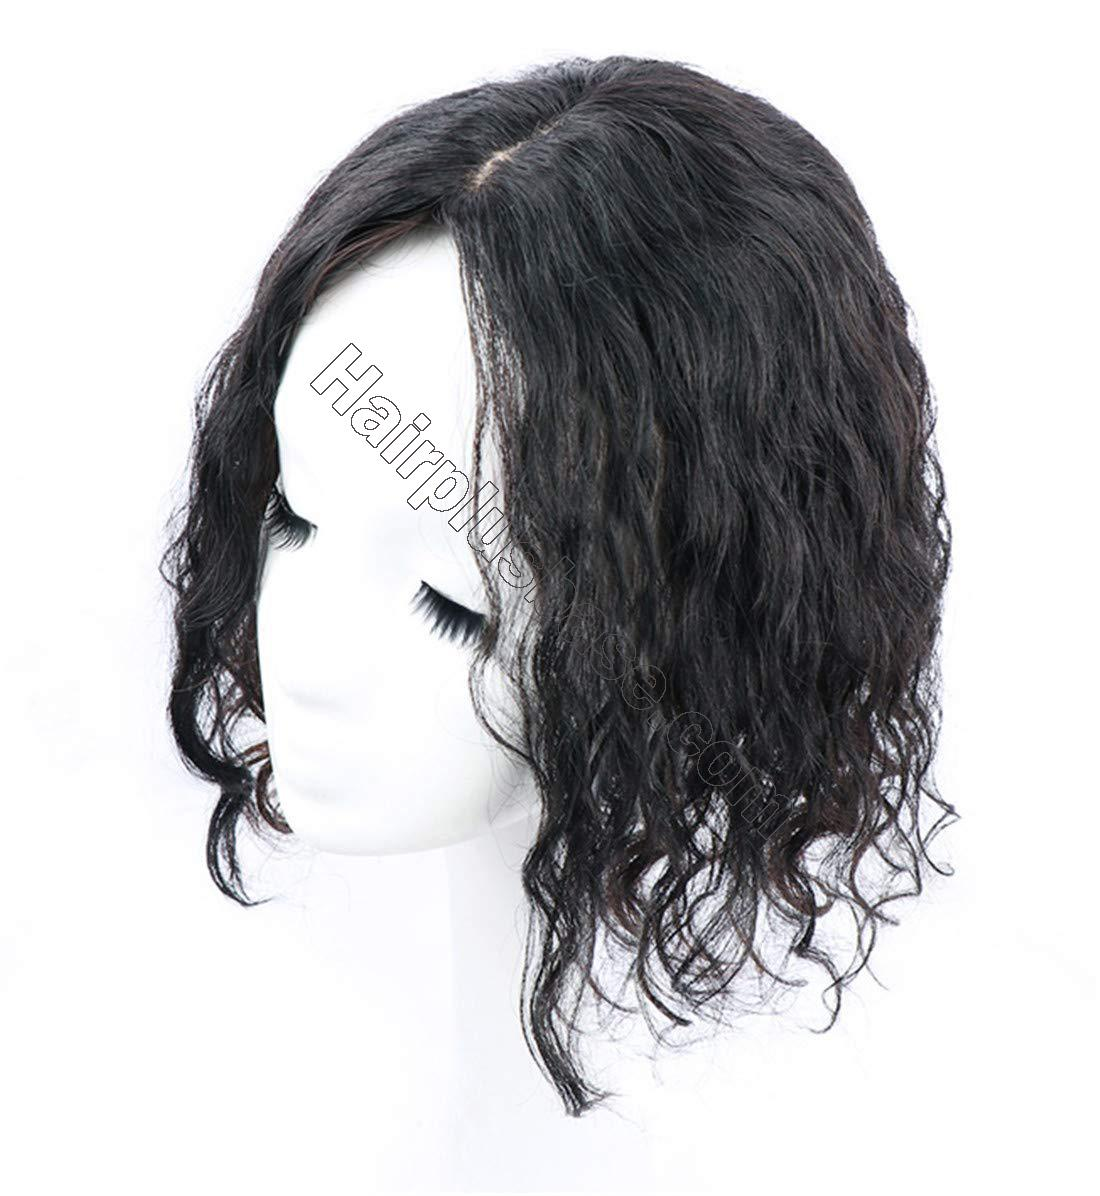 Curly Human Hair Topper Hair Thicken Hairpiece for Women with Thin Hair on Top, 5 Inchx5.5 Inch Silk Base 6